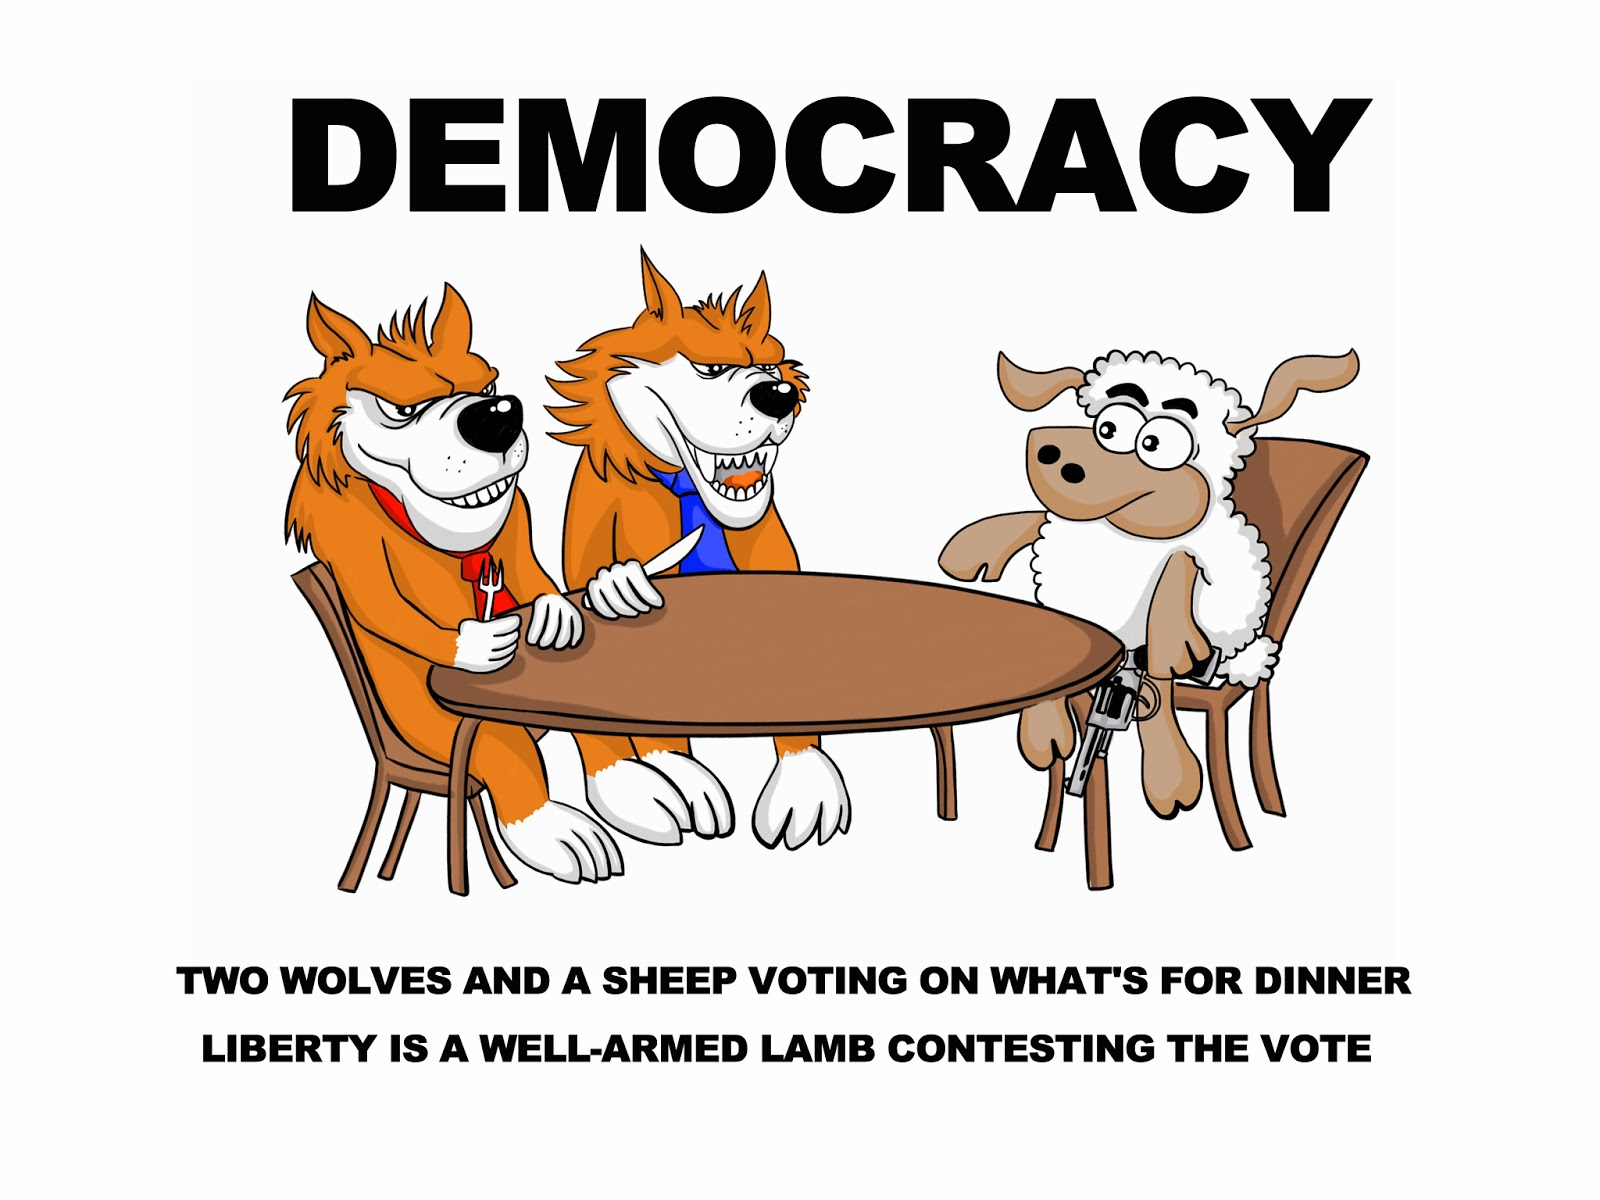 Two Wolves, Wolves,Democracy,dinner,vote,lamb,well armed,liberty,sheep, wolves vs sheep,lamp,democracy is,liberty is,